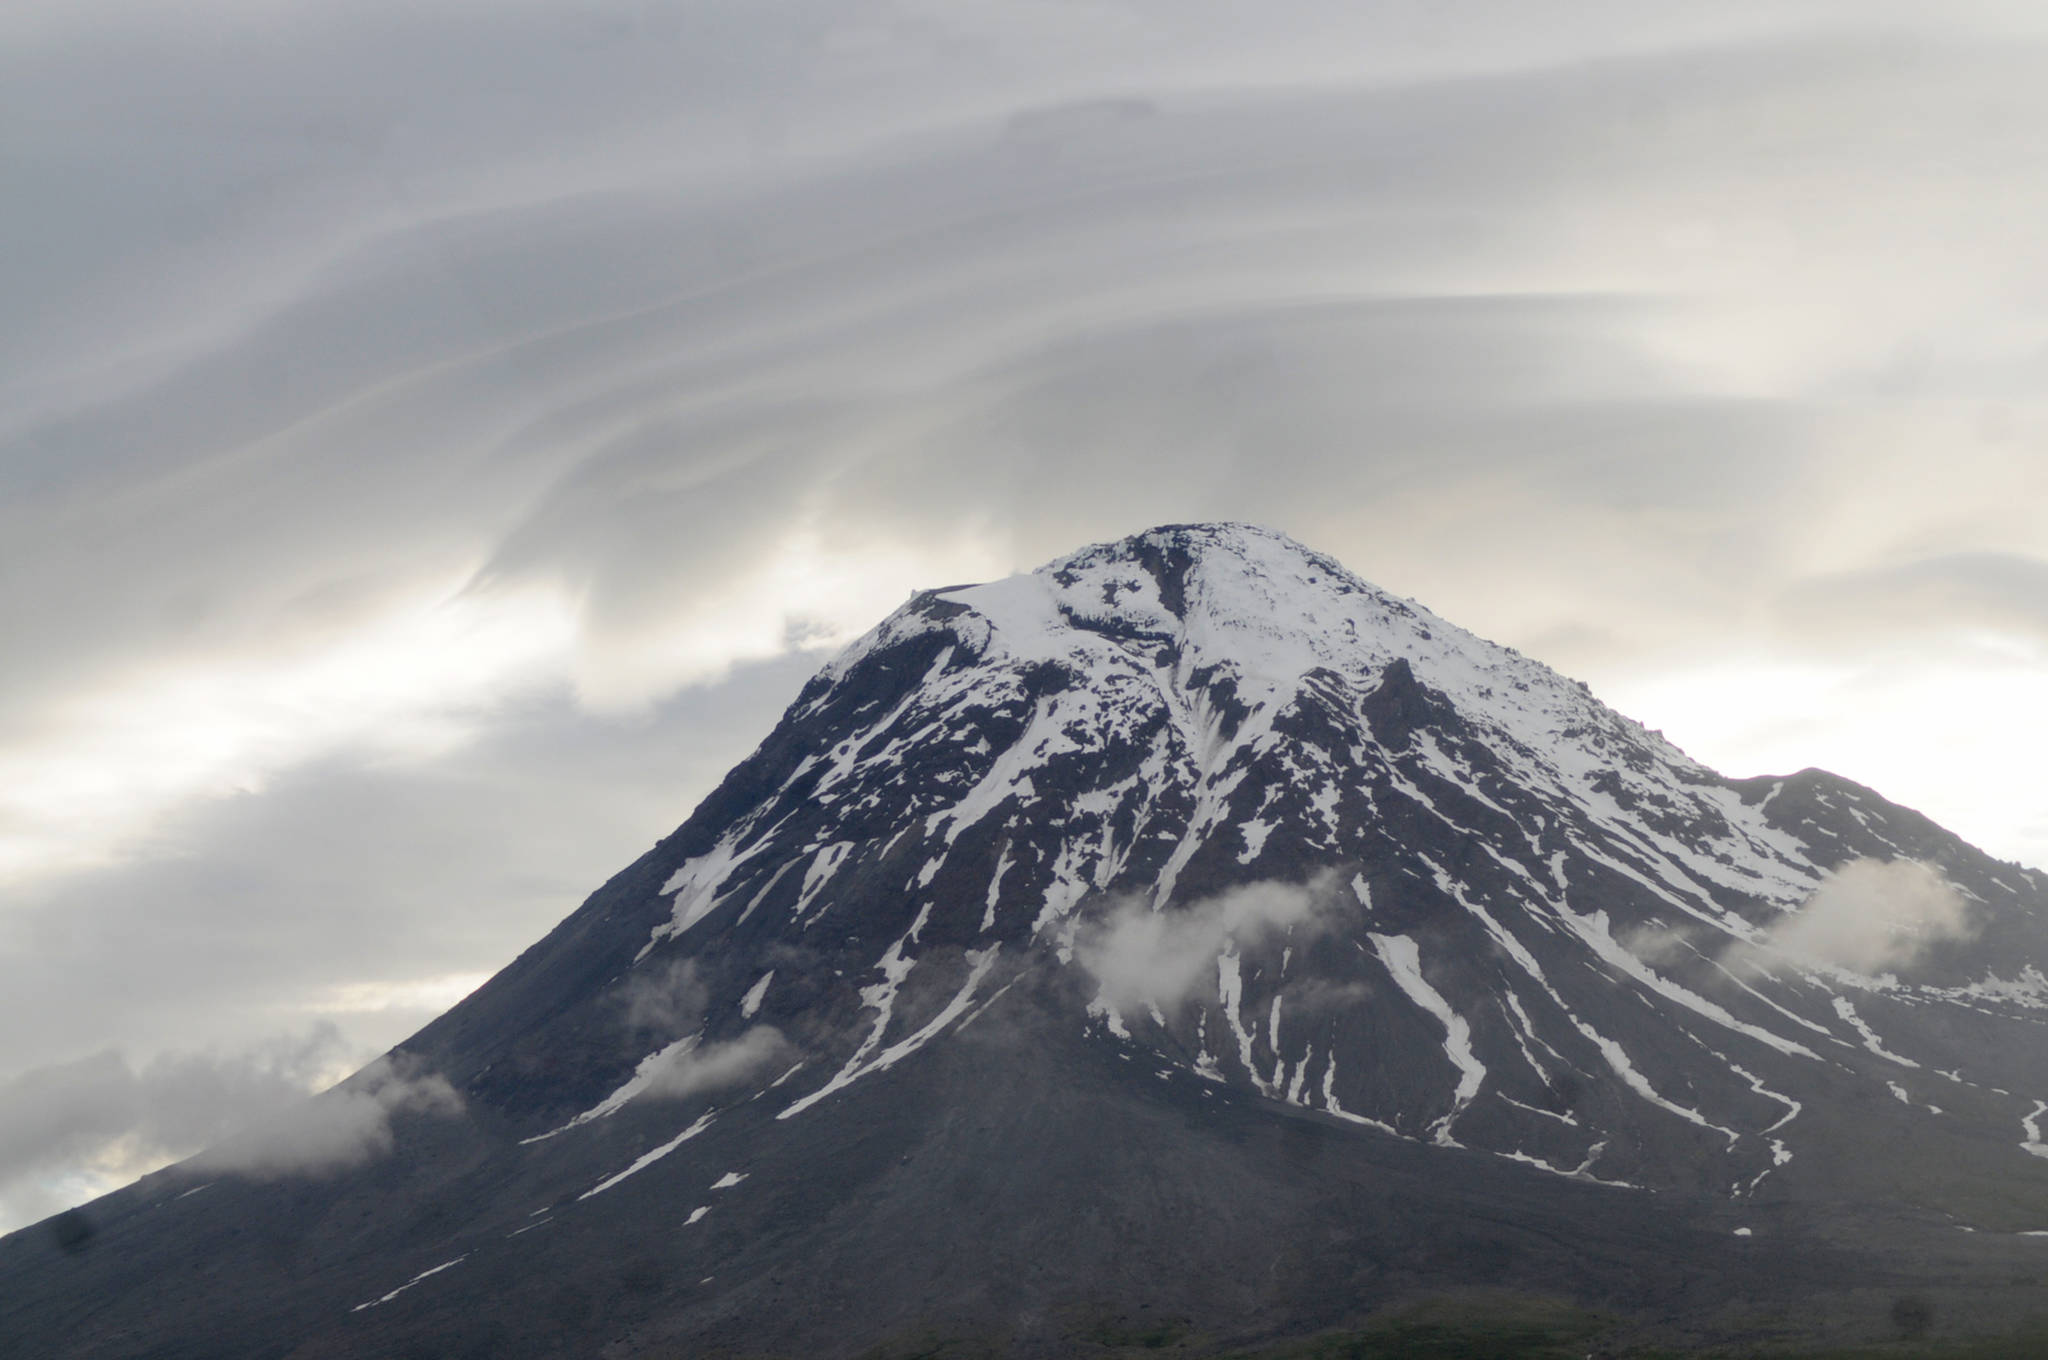 Clouds and smoke curl around the top of Augustine Volcano on Sunday, June 4, 2017 on Augustine Island, Alaska. The remote island in Cook Inlet is composed of little more than the volcano and its surrounding debris. (Elizabeth Earl/Peninsula Clarion)